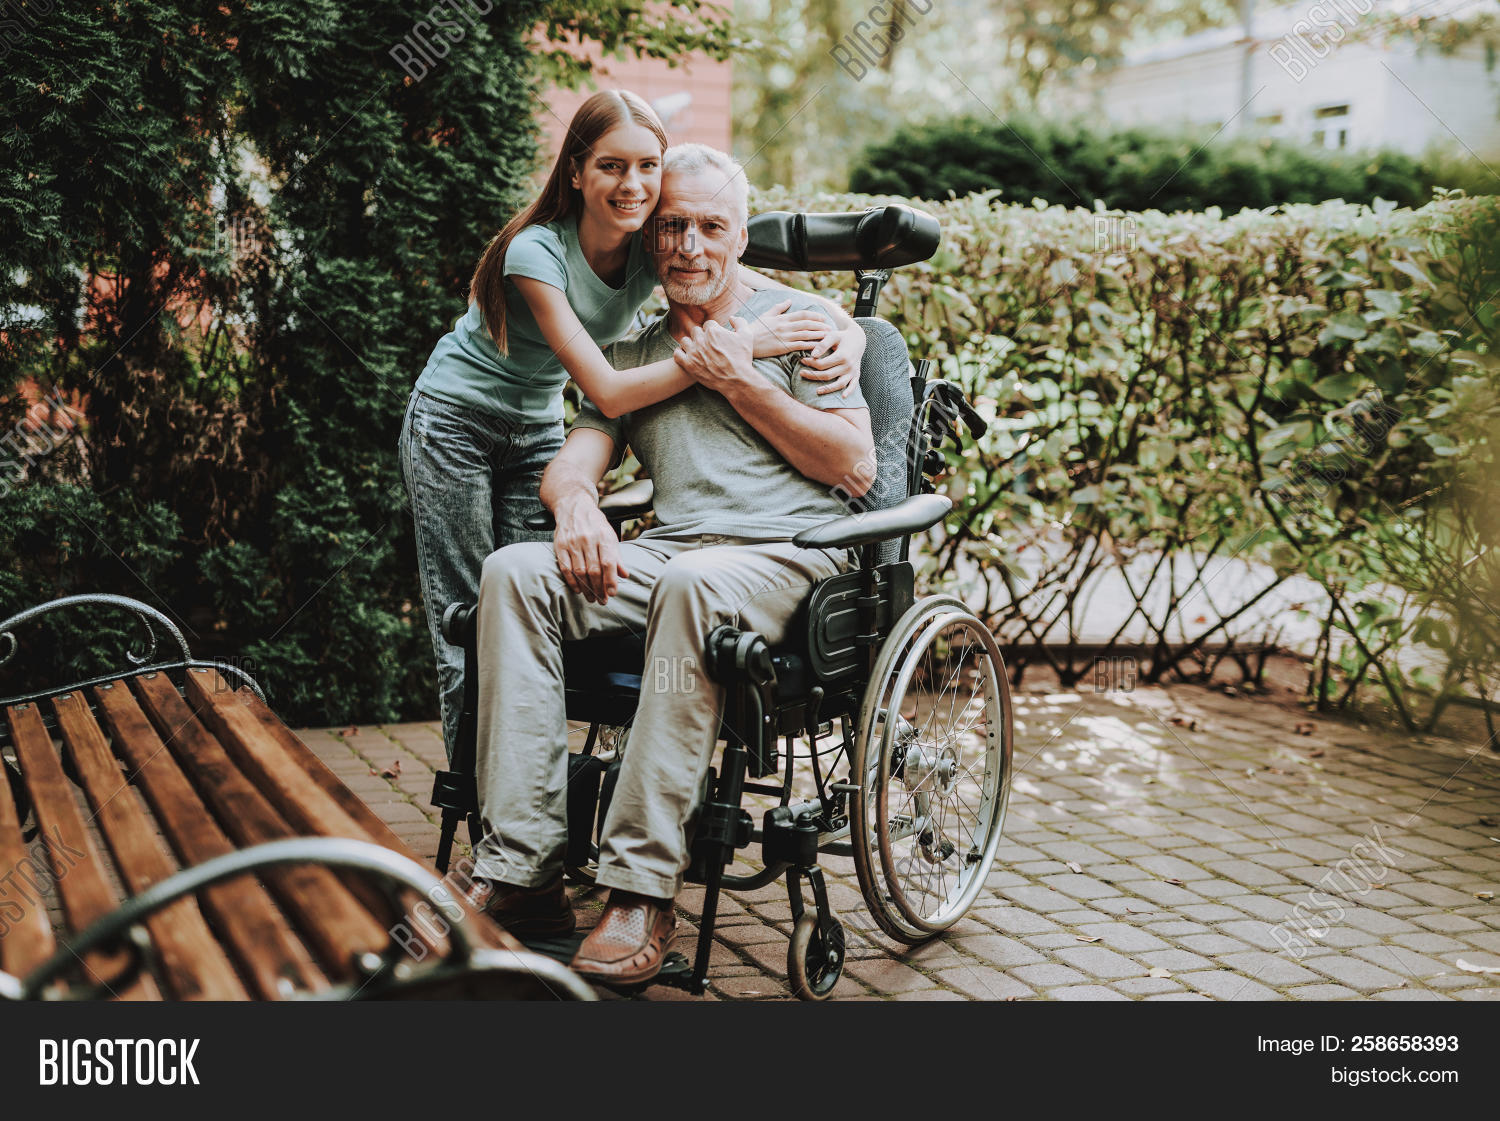 Disease Old Man Young Image Photo Free Trial Bigstock